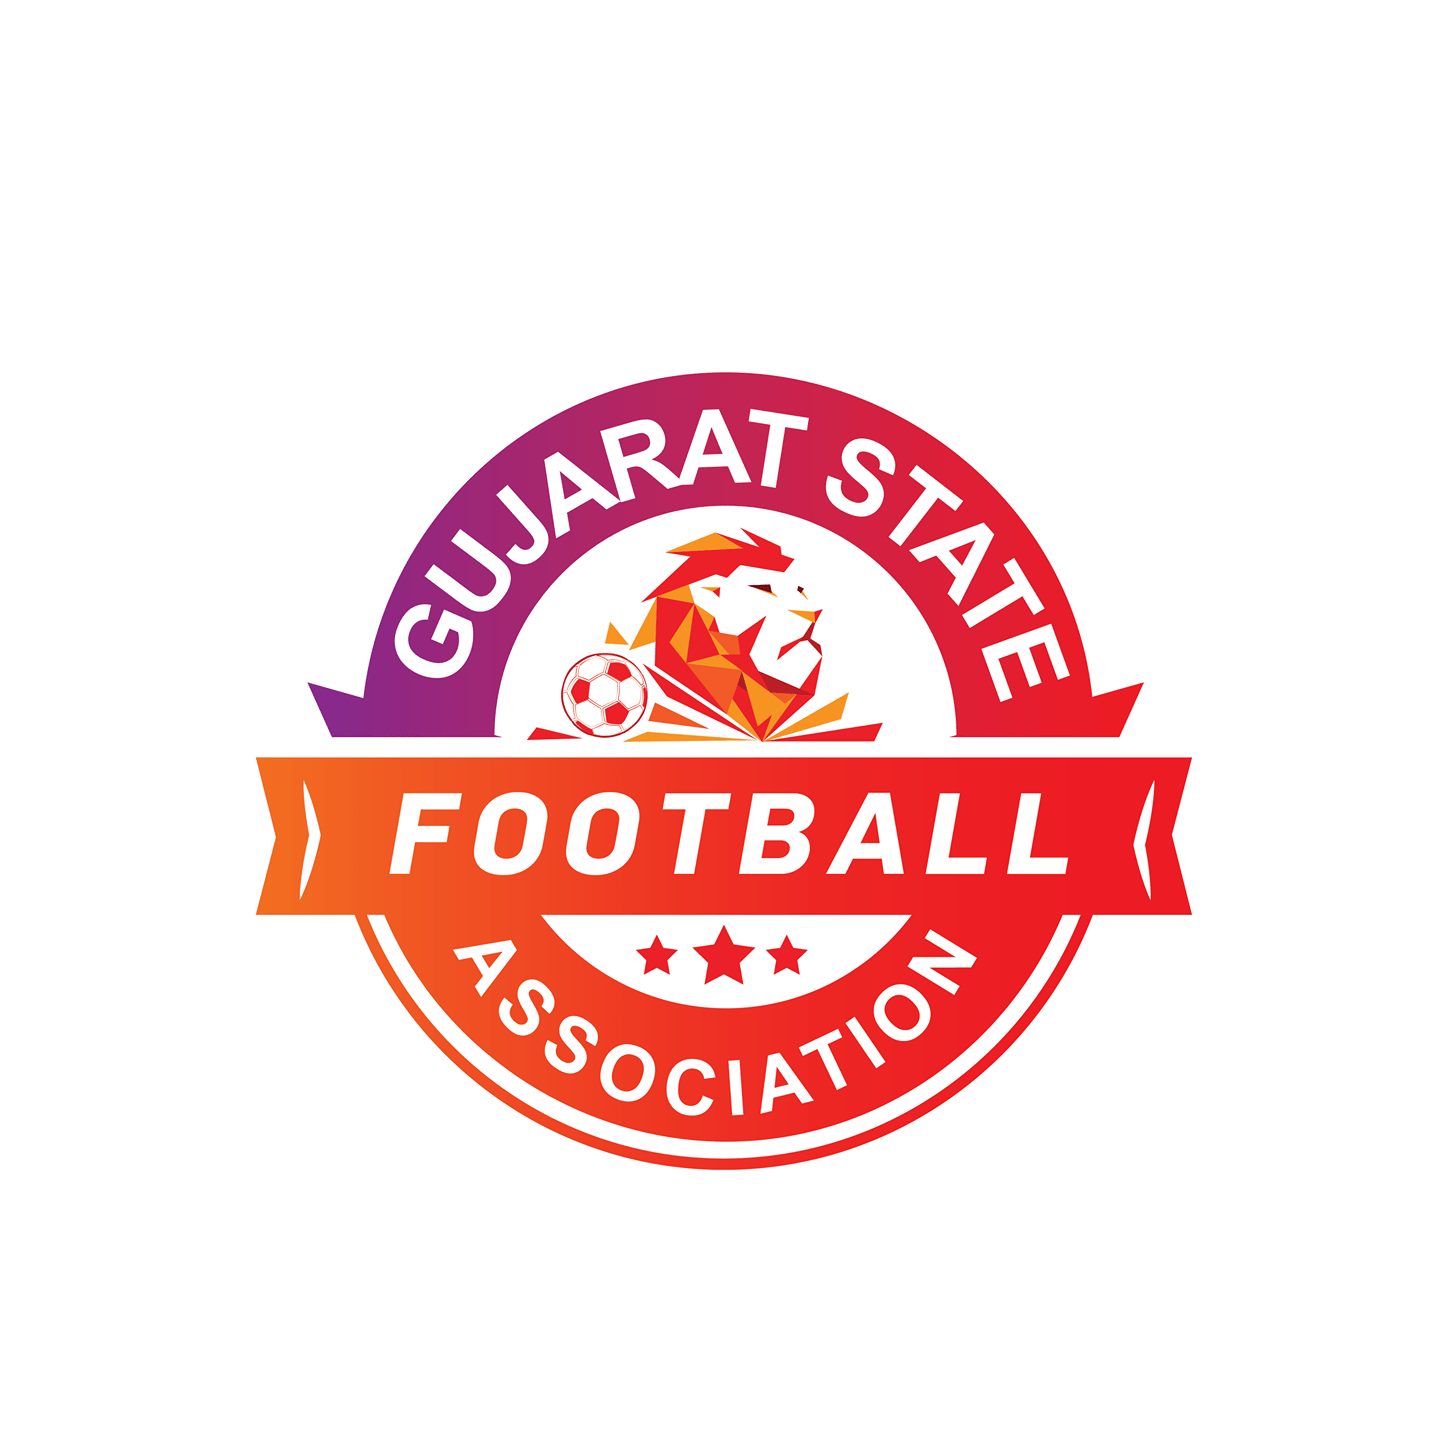 gujarat state football association logo